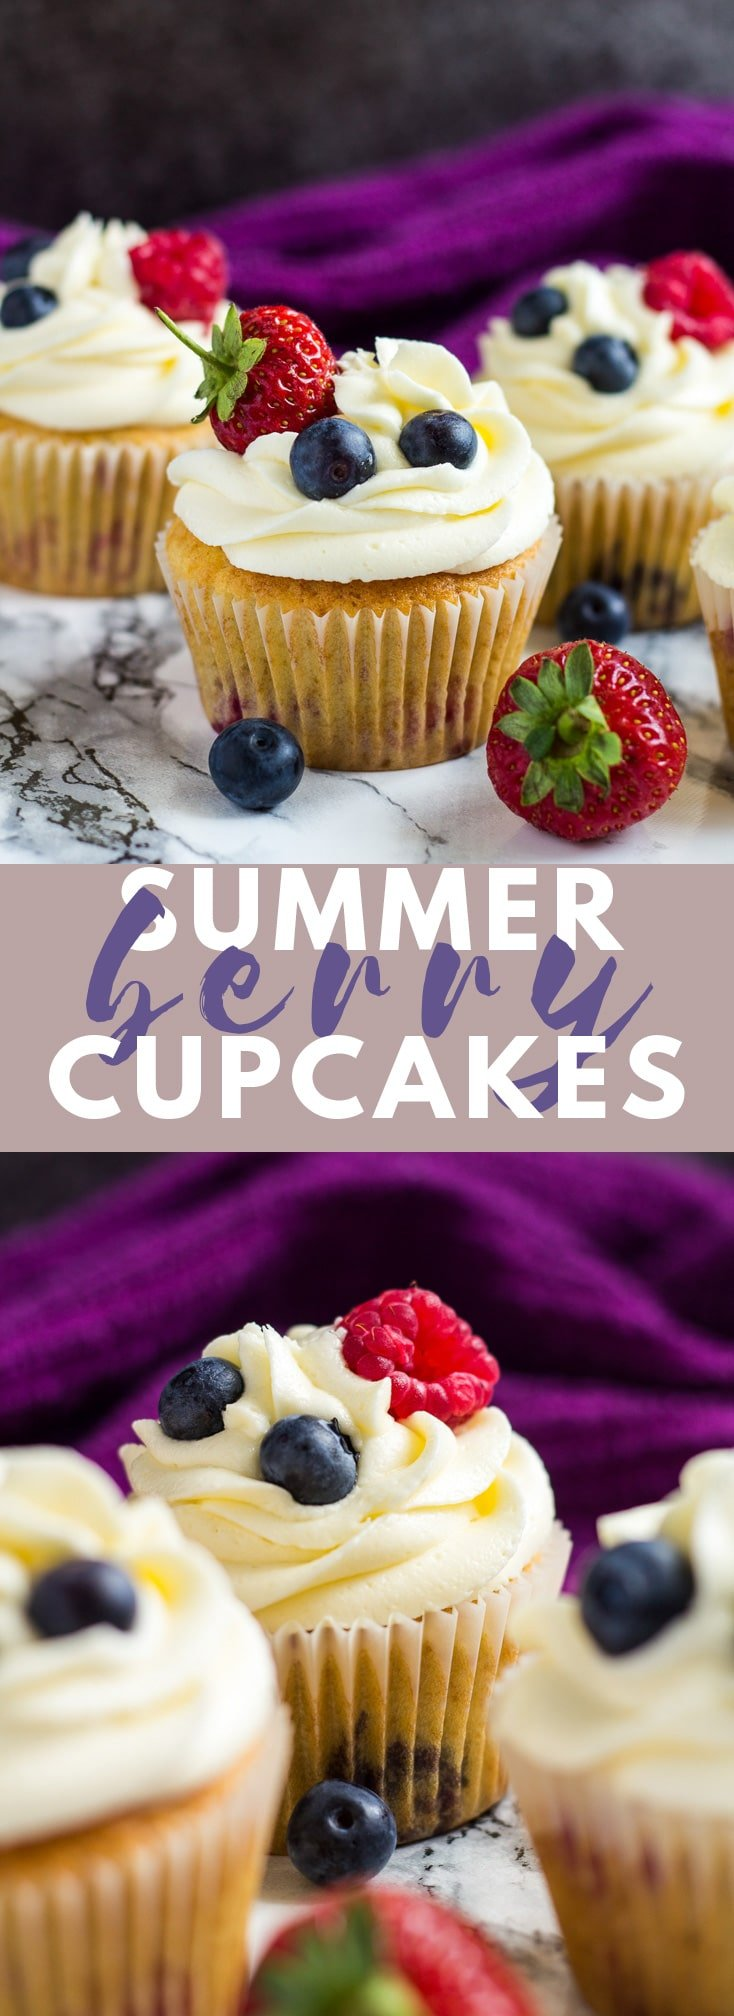 Summer Berry Cupcakes - Deliciously moist and fluffy vanilla cupcakes stuffed with summer berries, and topped with a sweet buttercream frosting! #cupcakes #cupcakerecipes #summerrecipes